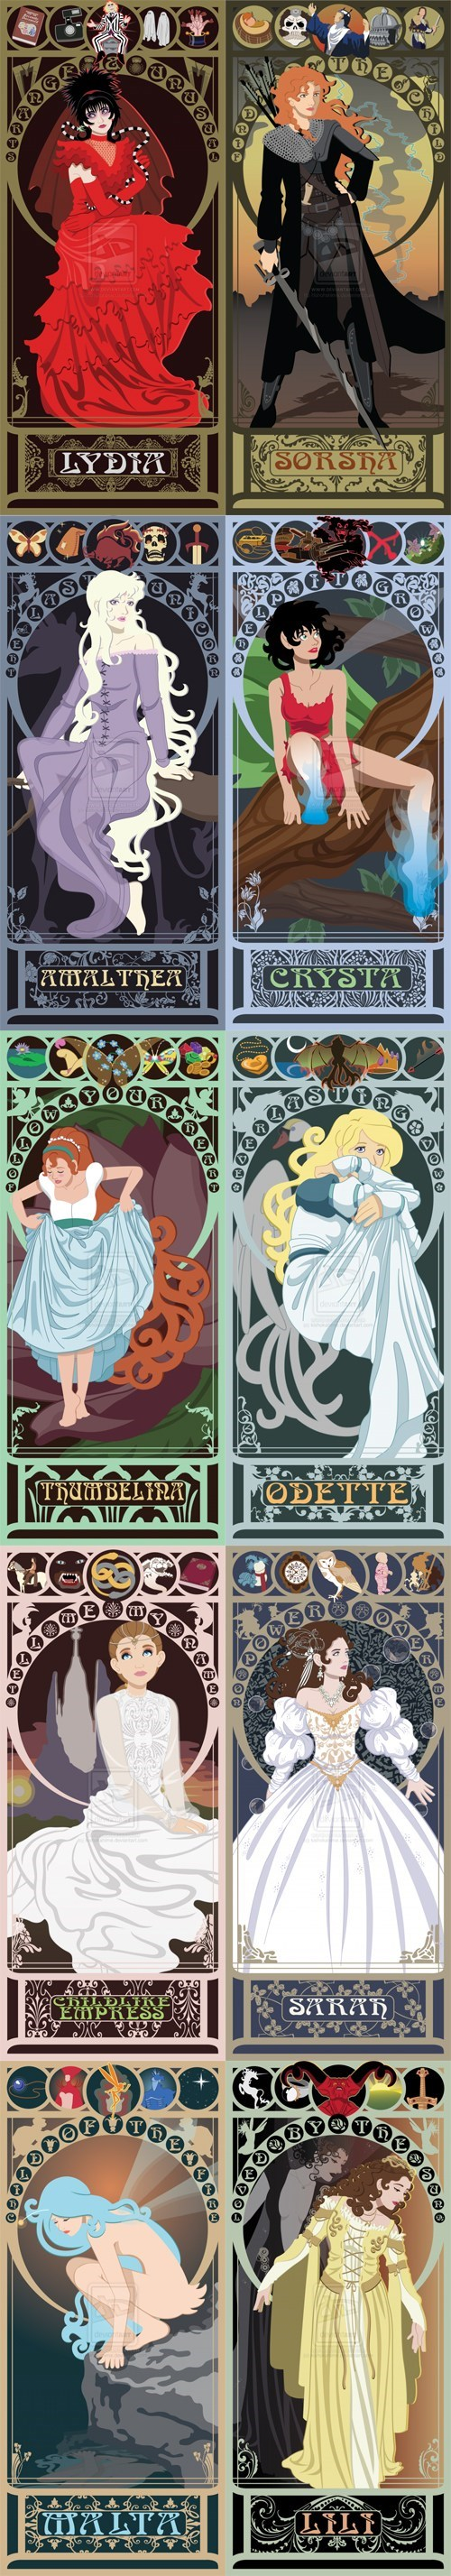 sarah Amalthea fantasy the swan princess odette Malta beetlejuice Childlike Empress nostalgia Fan Art legend lili Sea Prince and the Fire Child thumbelina heroines art nouveau Crysta The Last Unicorn lydia FernGully-The-Last-Rainforest neverending story willow labyrinth Sorsha - 6766816000